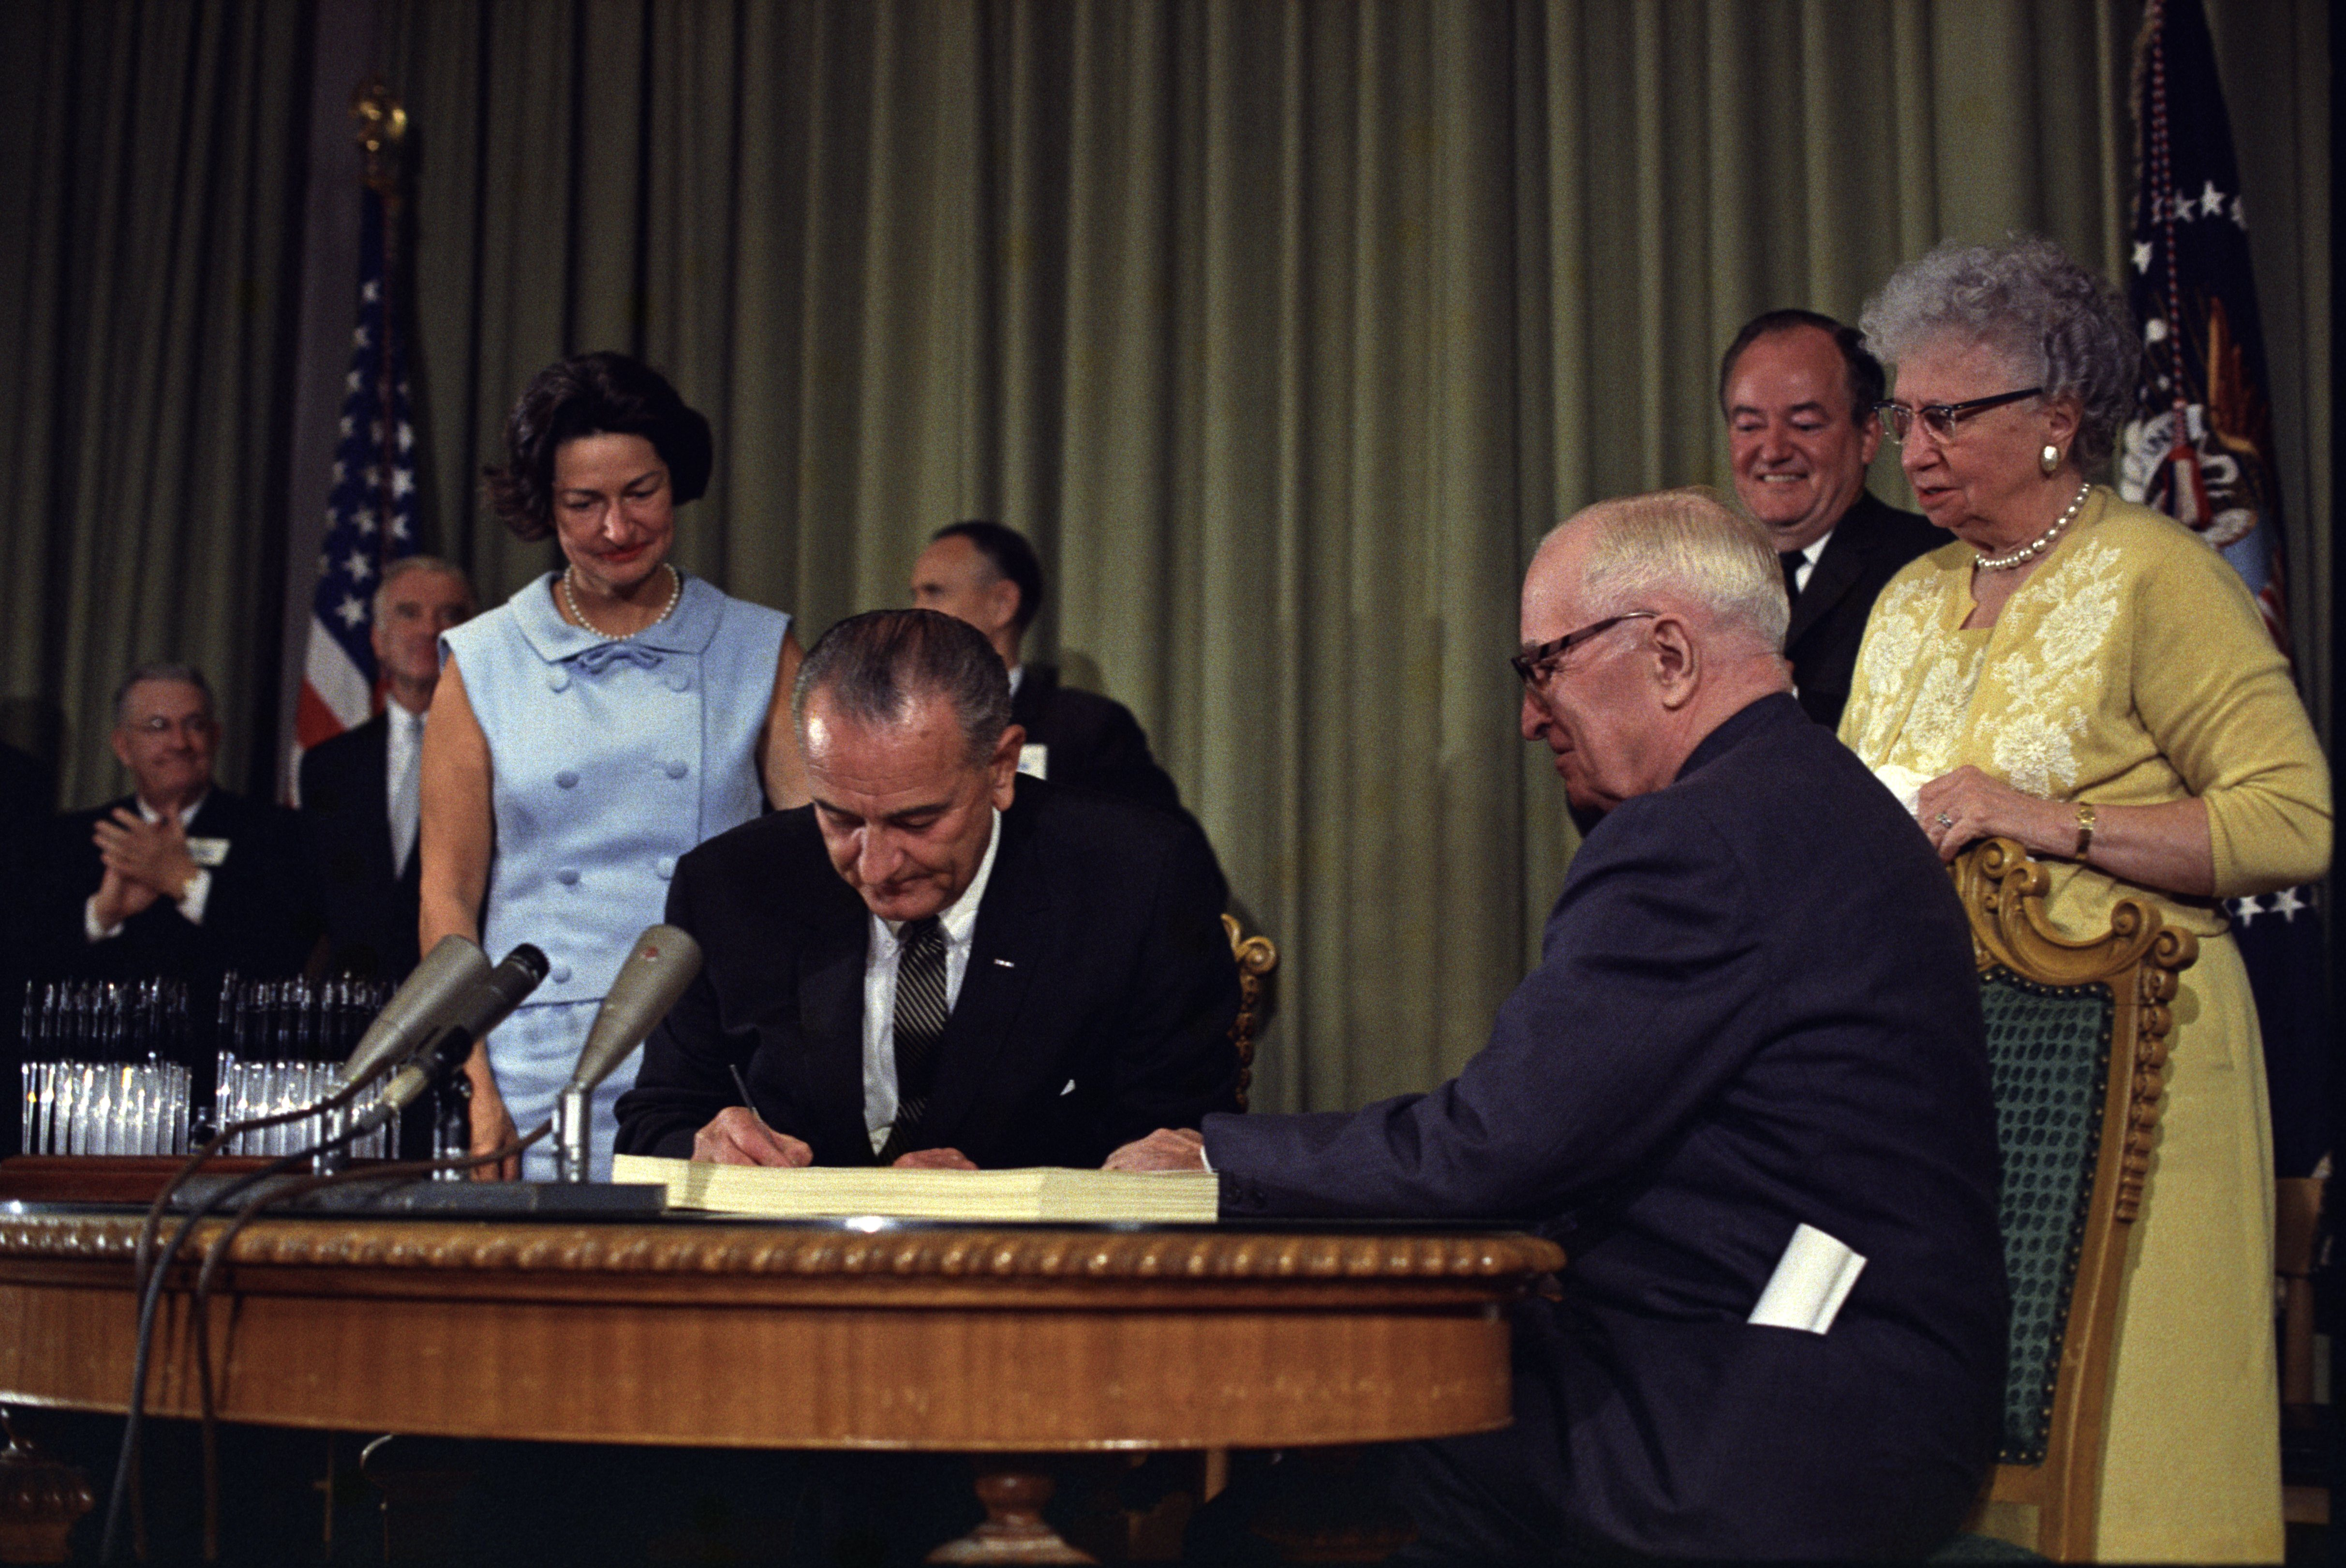 Lyndon Johnson signing Medicare bill, with Harry Truman, July 30, 1965